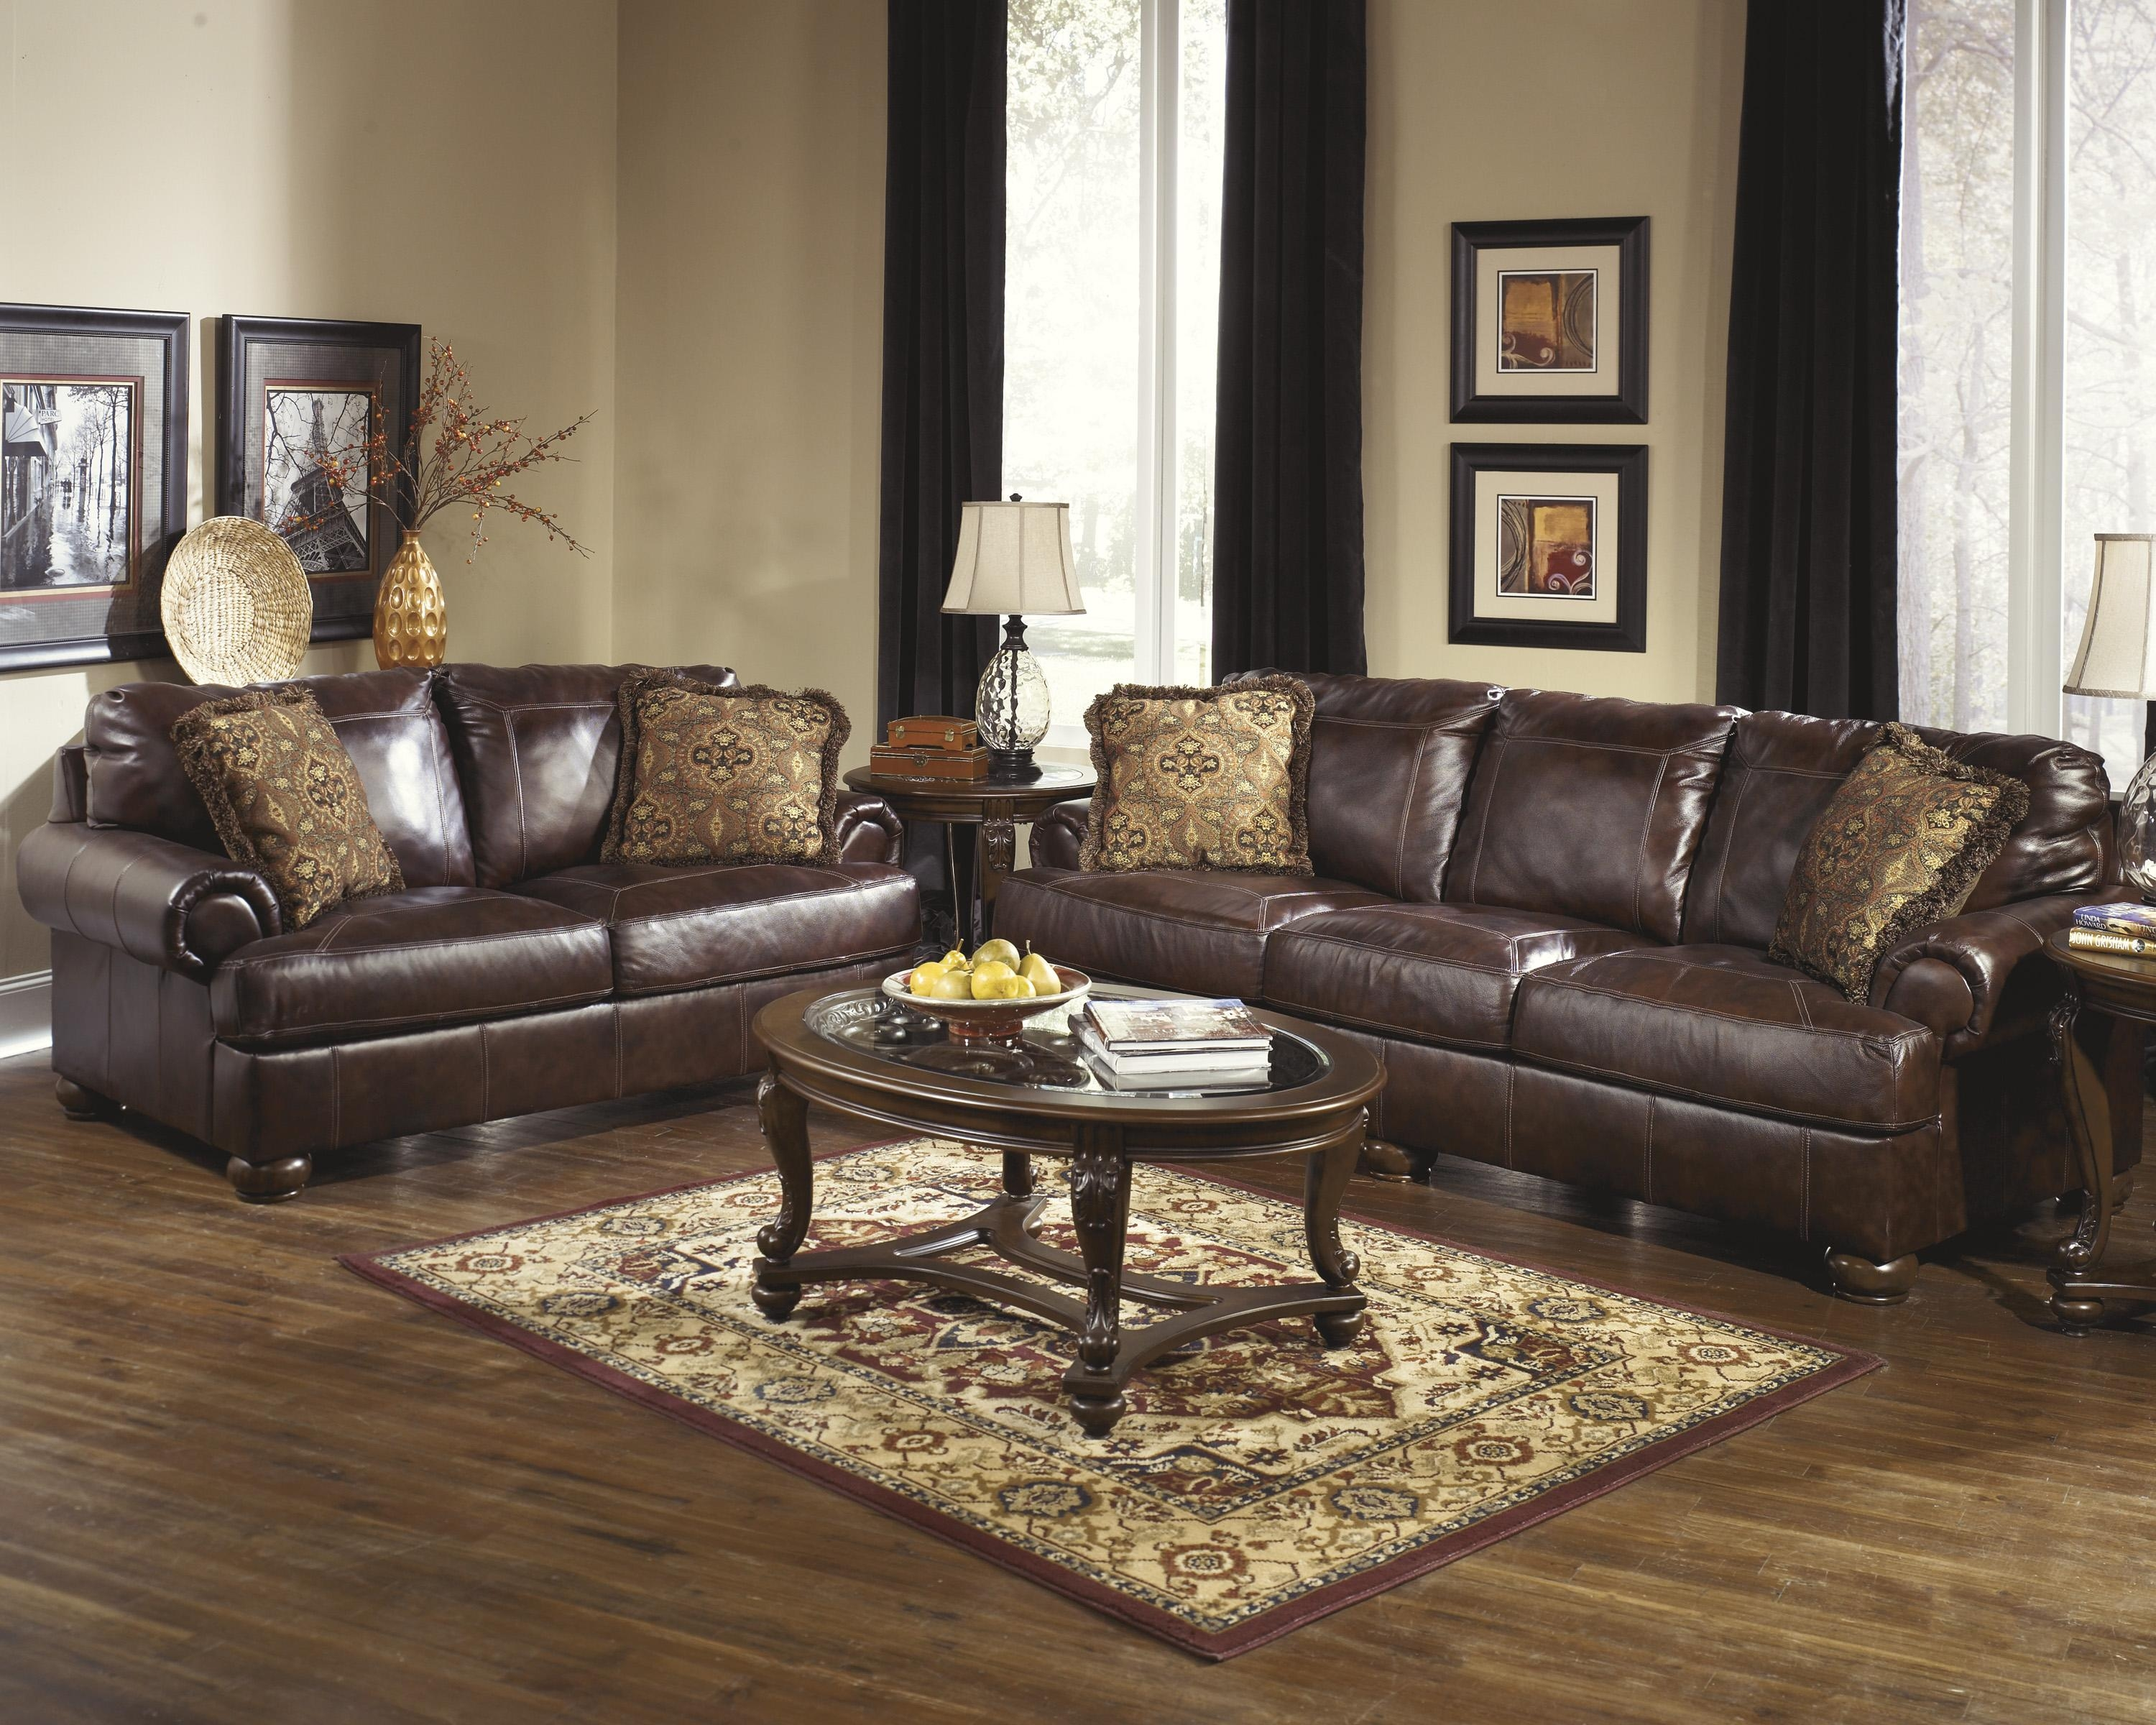 Cheap Ashley Furniture Living Room Sets Glendale, Ca – A Star For Living Room Sofas And Chairs (View 14 of 20)